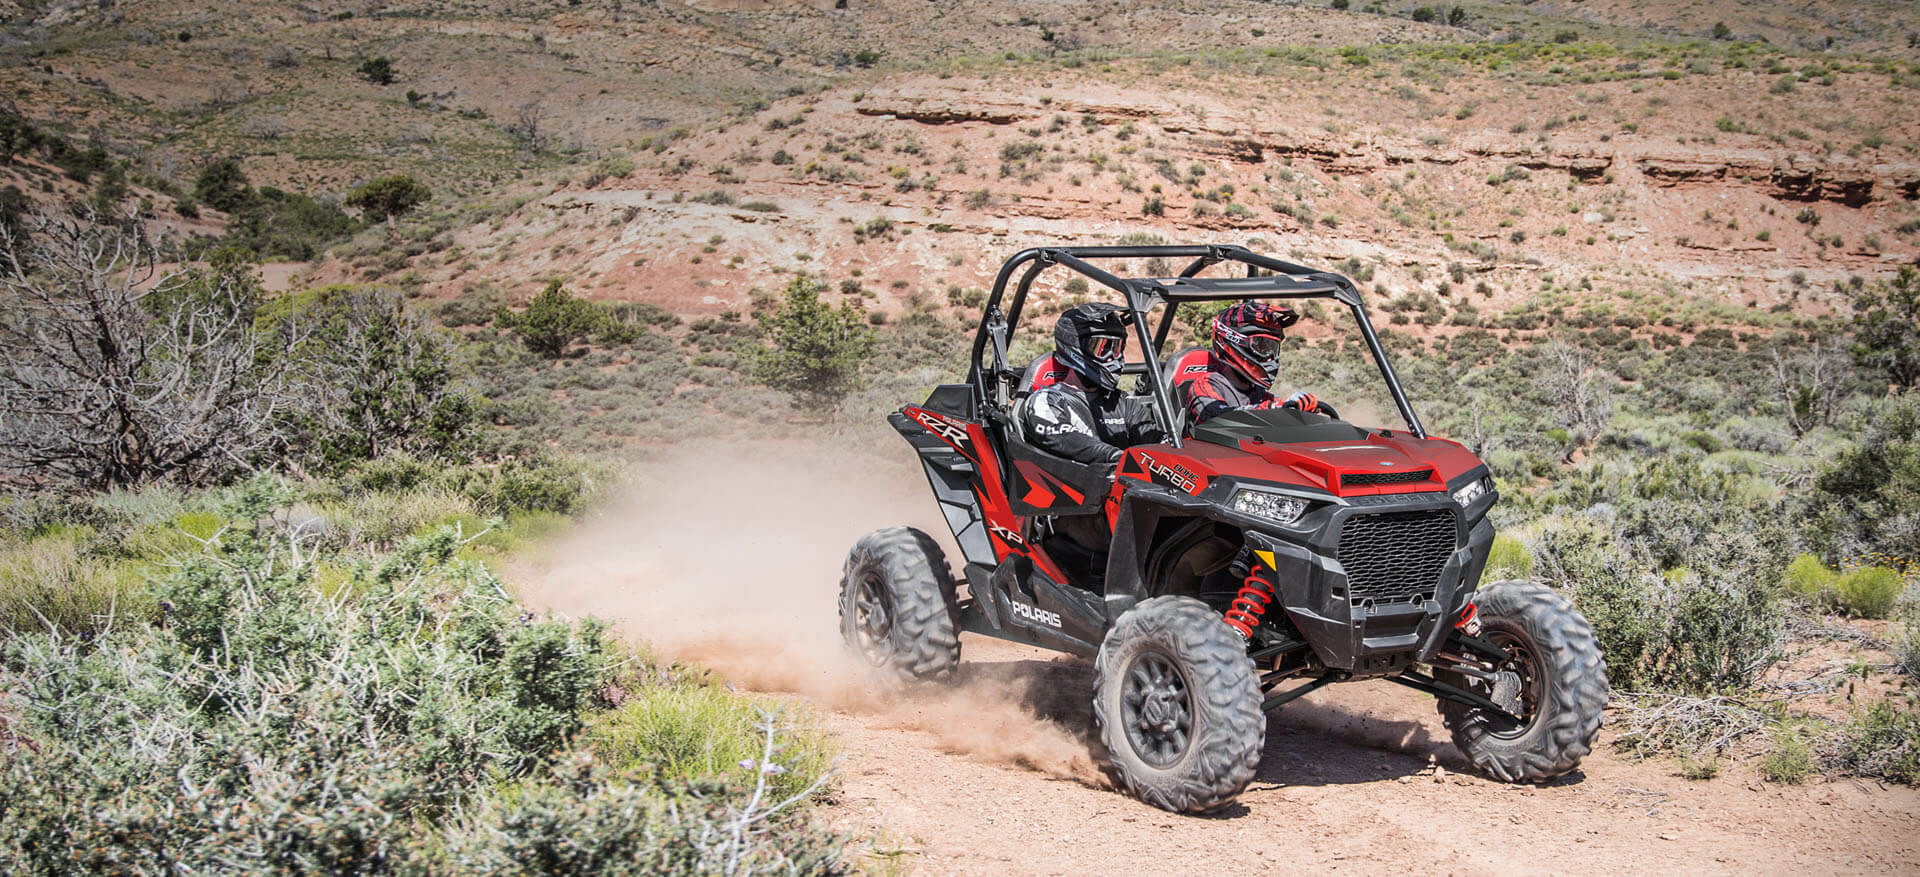 rzr-xp-turbo-fox-edition-location-4-lg